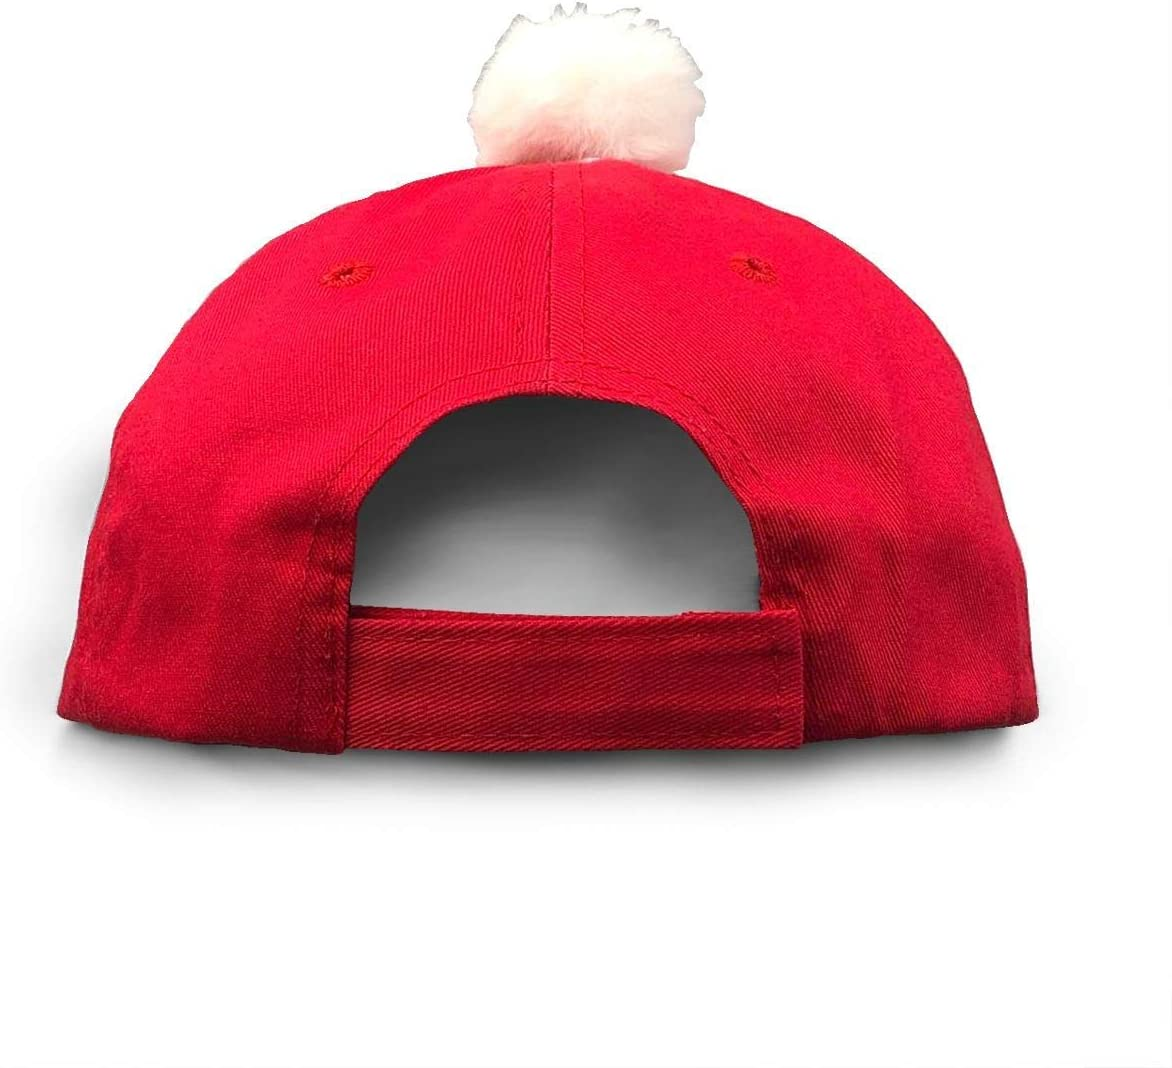 IOI Innovative Online Industries Ready Player One Christmas Hats Red Santa Baseball Cap for Kids Adult Families Celebrate New Year Party GGdjst Weihnachtsm/ützen